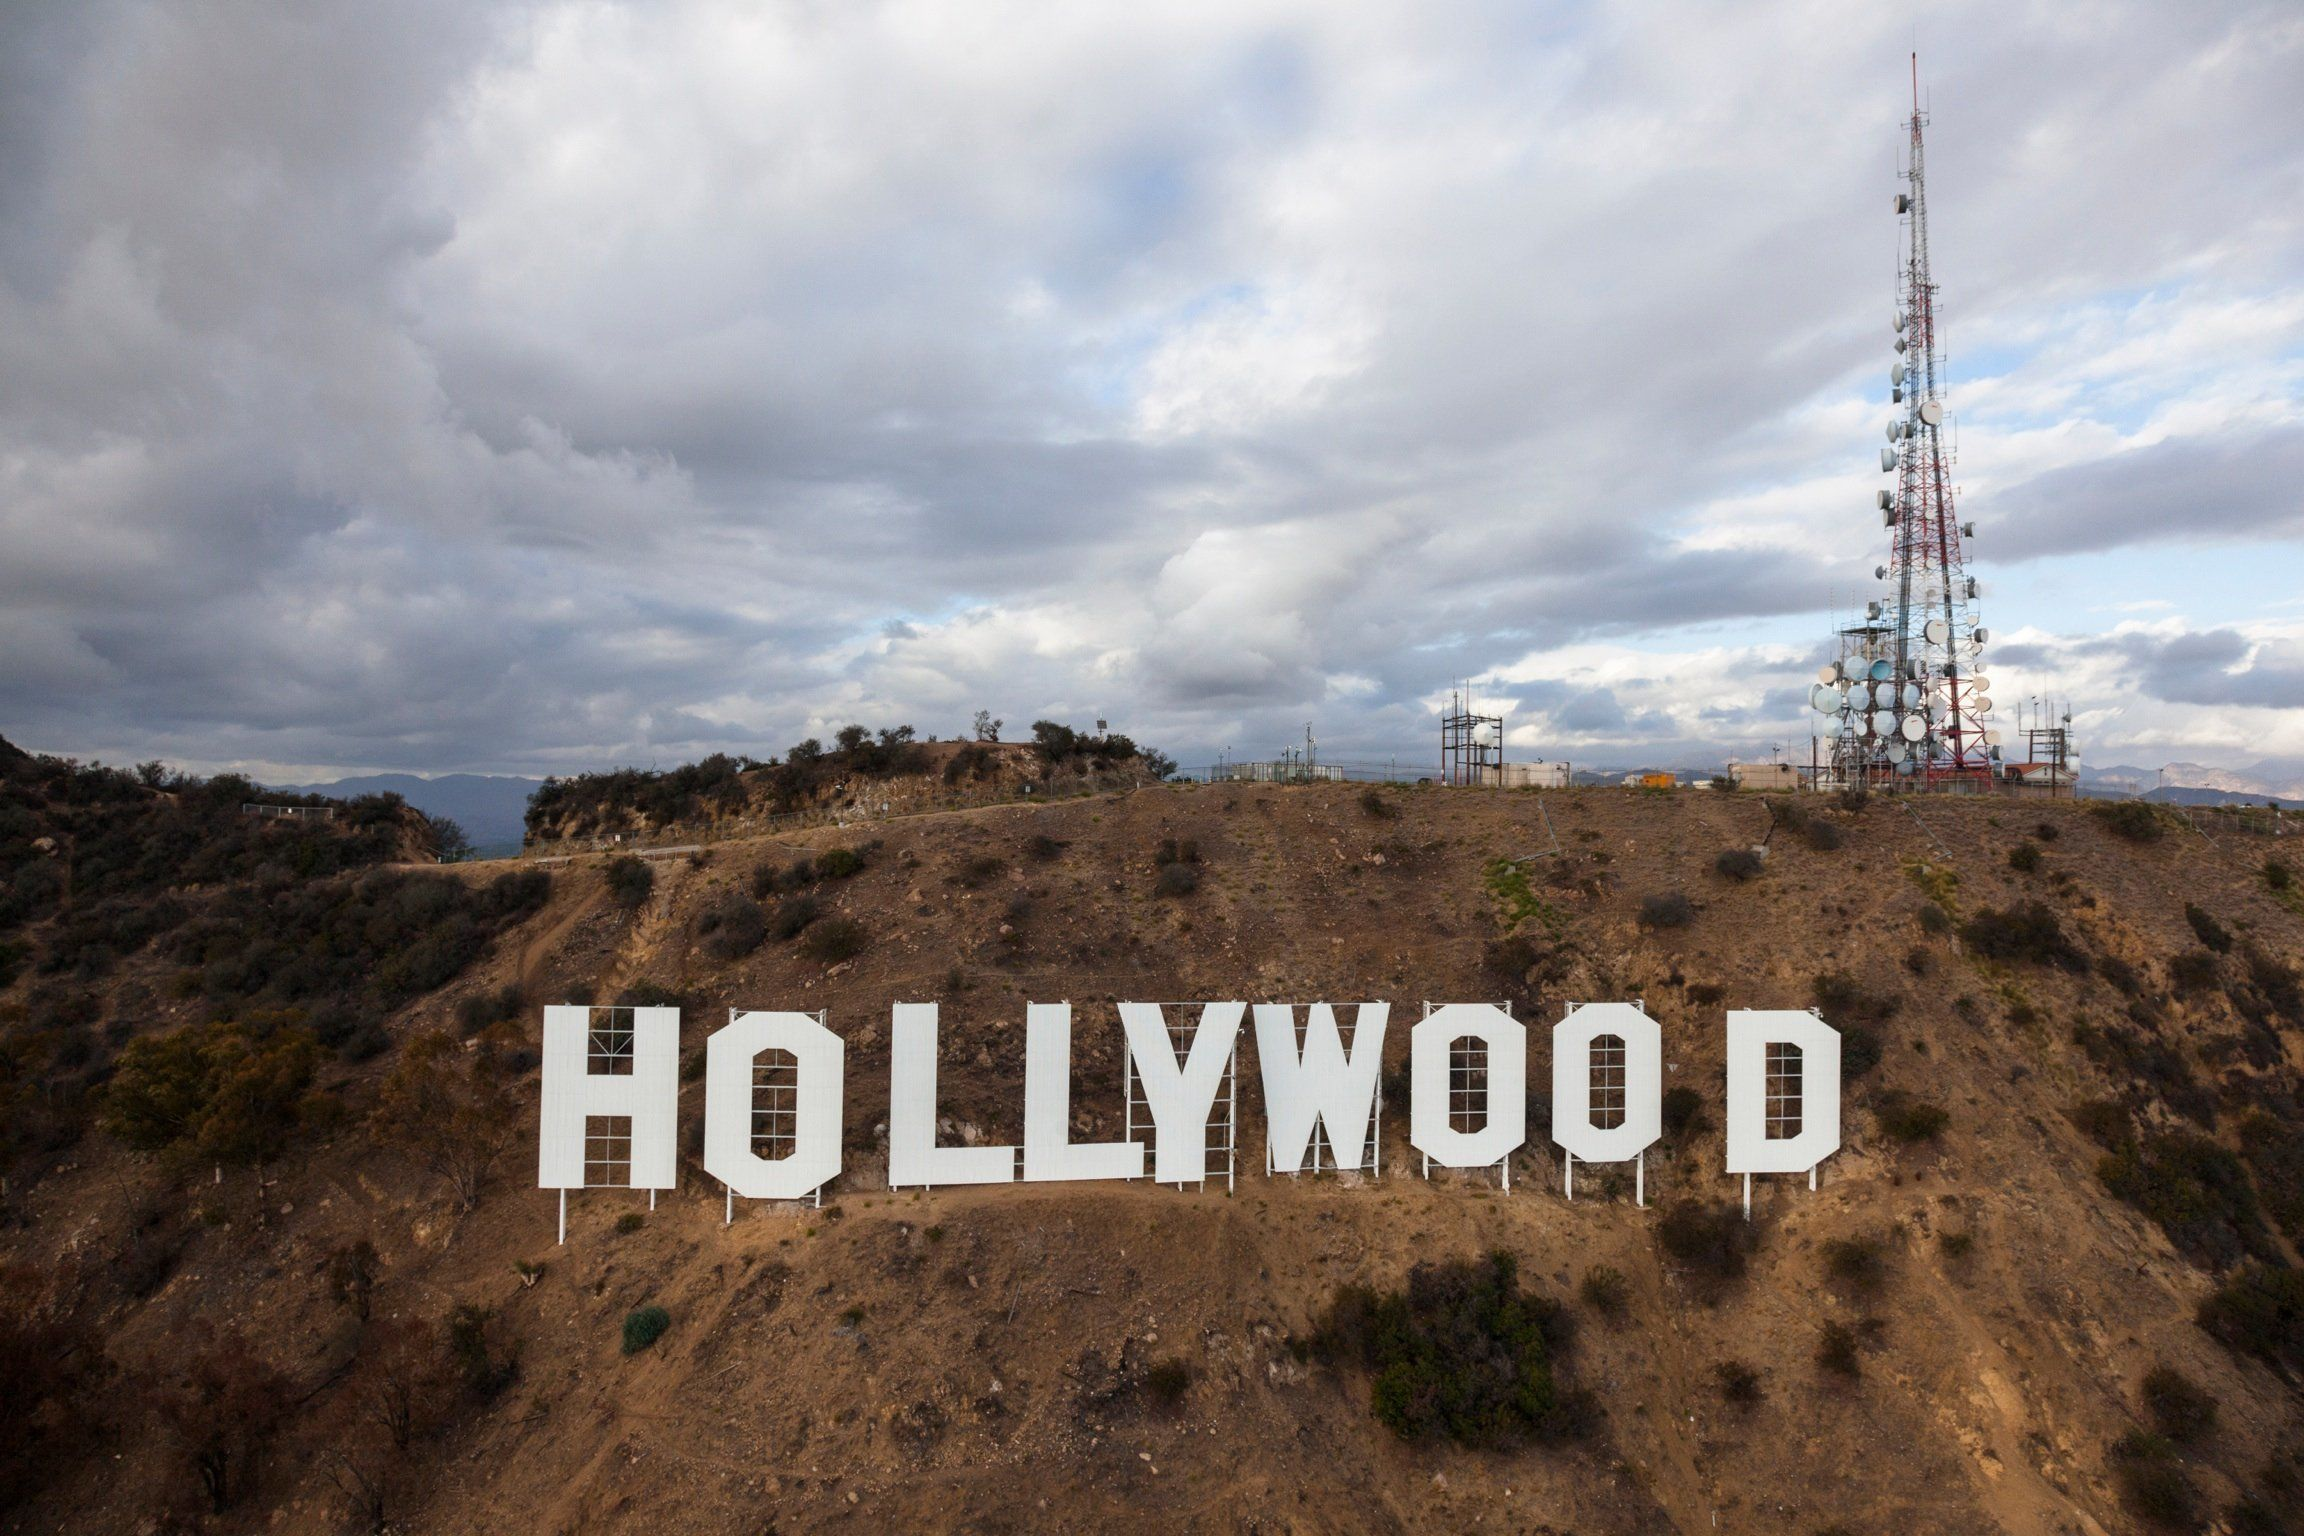 Giant sign in Hollywood. Los angeles, California. USA